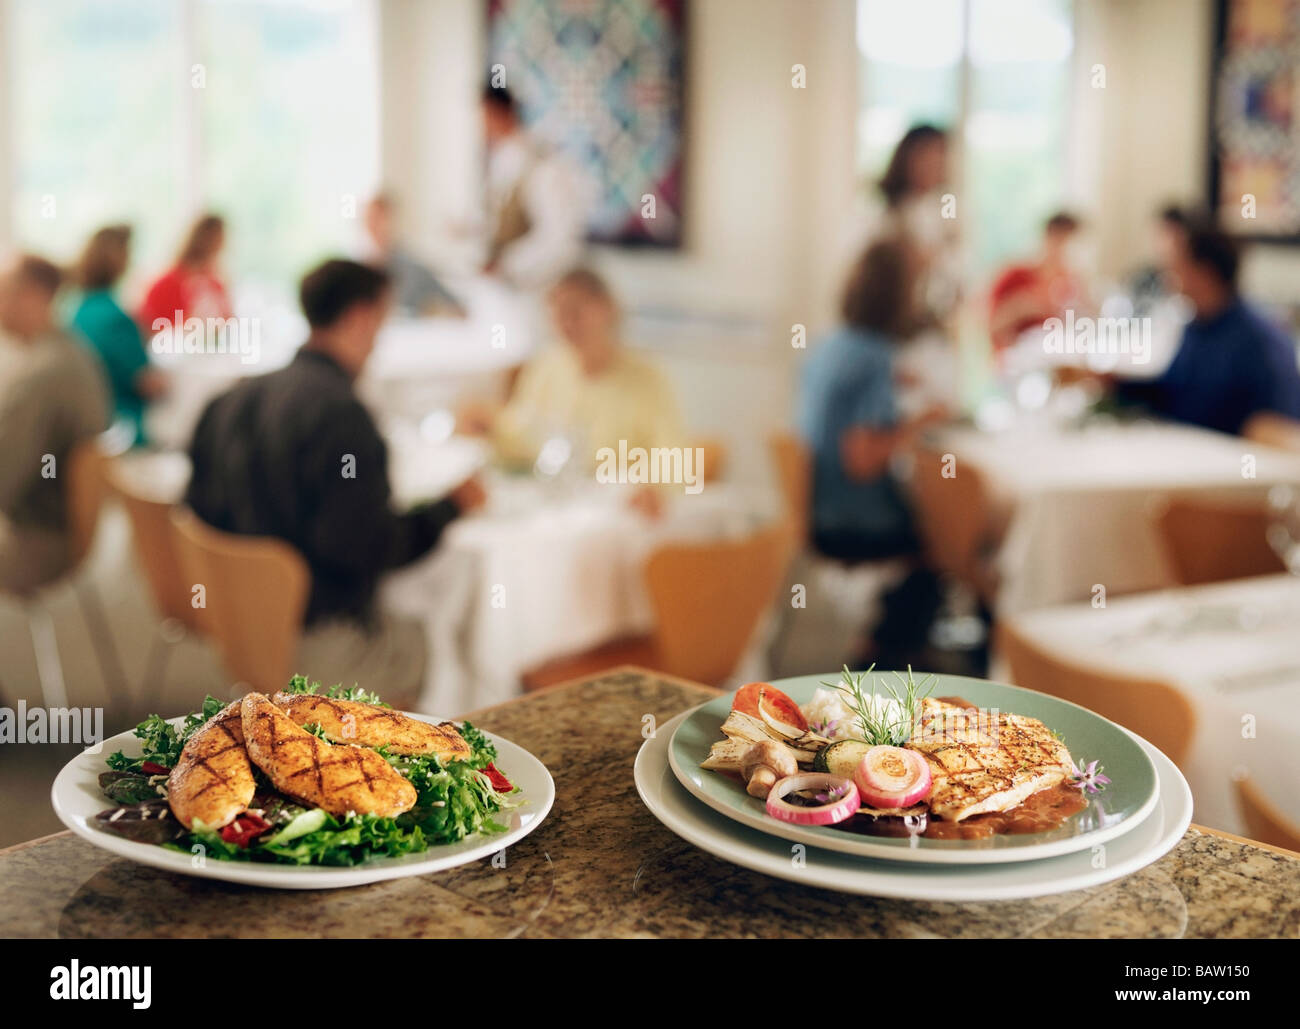 Restaurant Background With People plates with food on bar counter in restaurant, people in